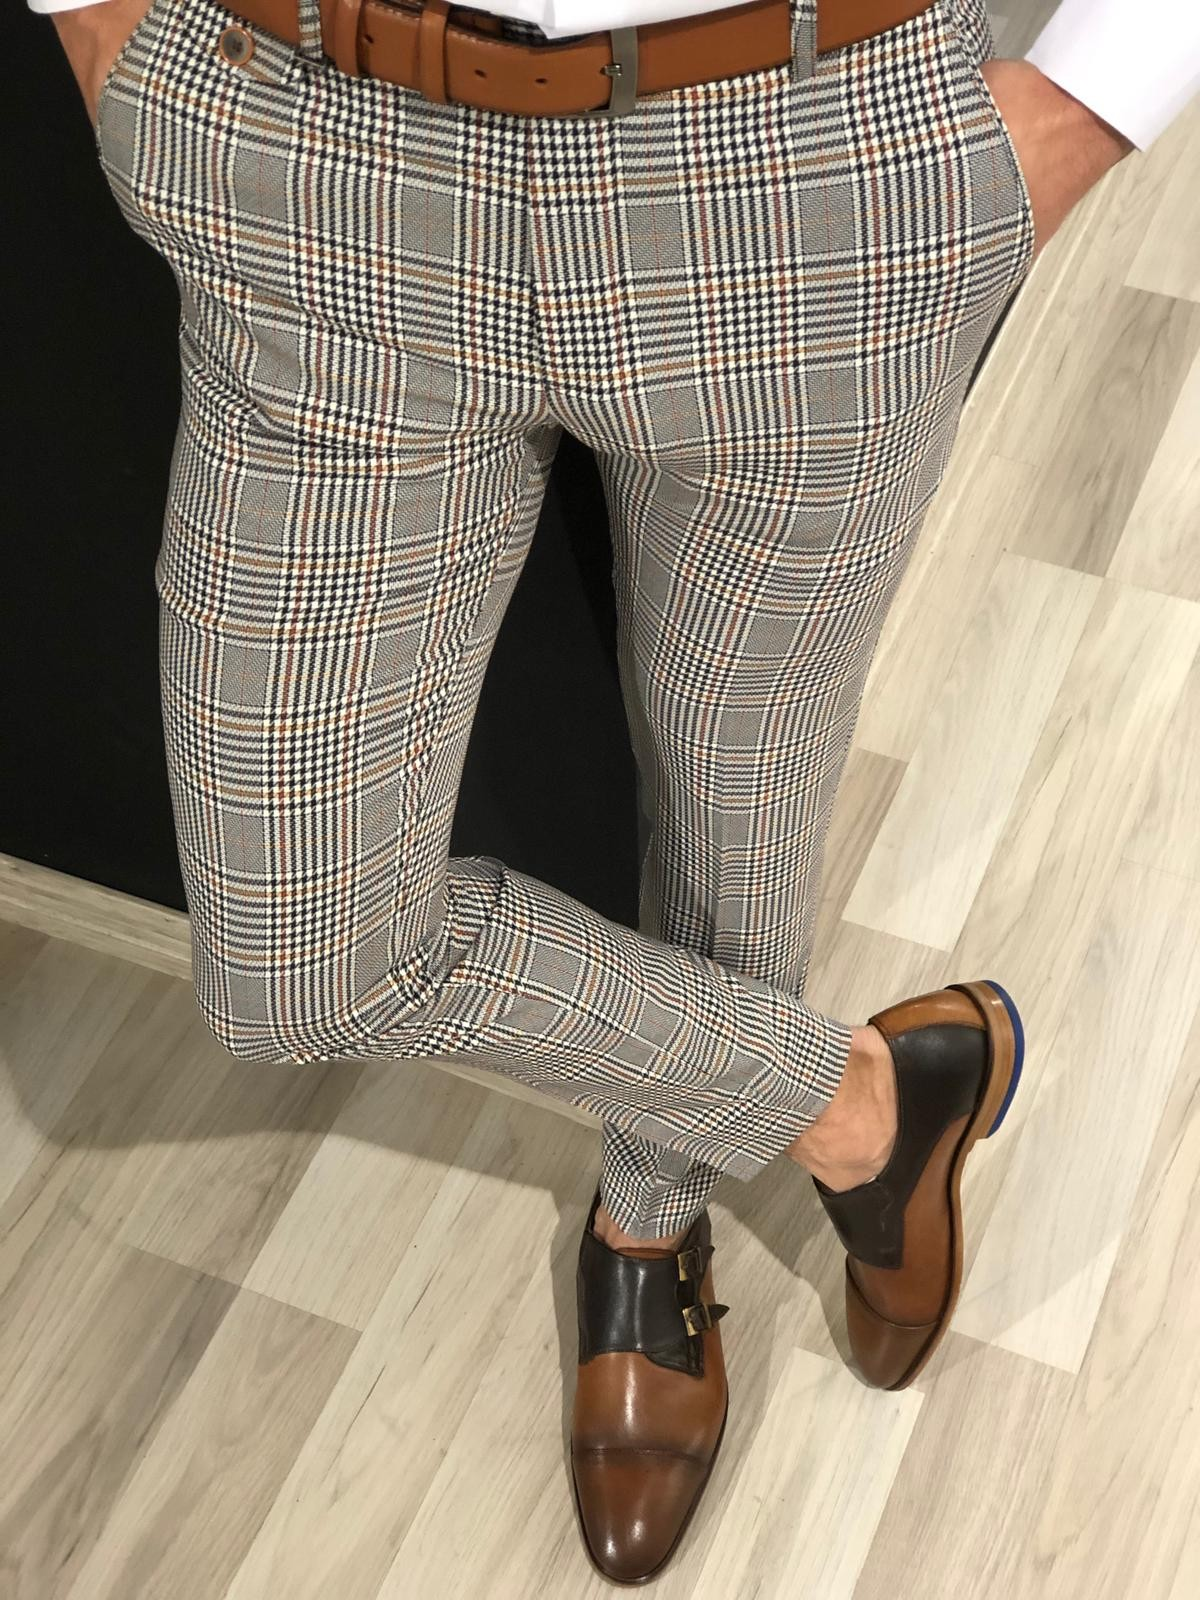 Plaid Pants Are the Only Pants You Should Buy this Season